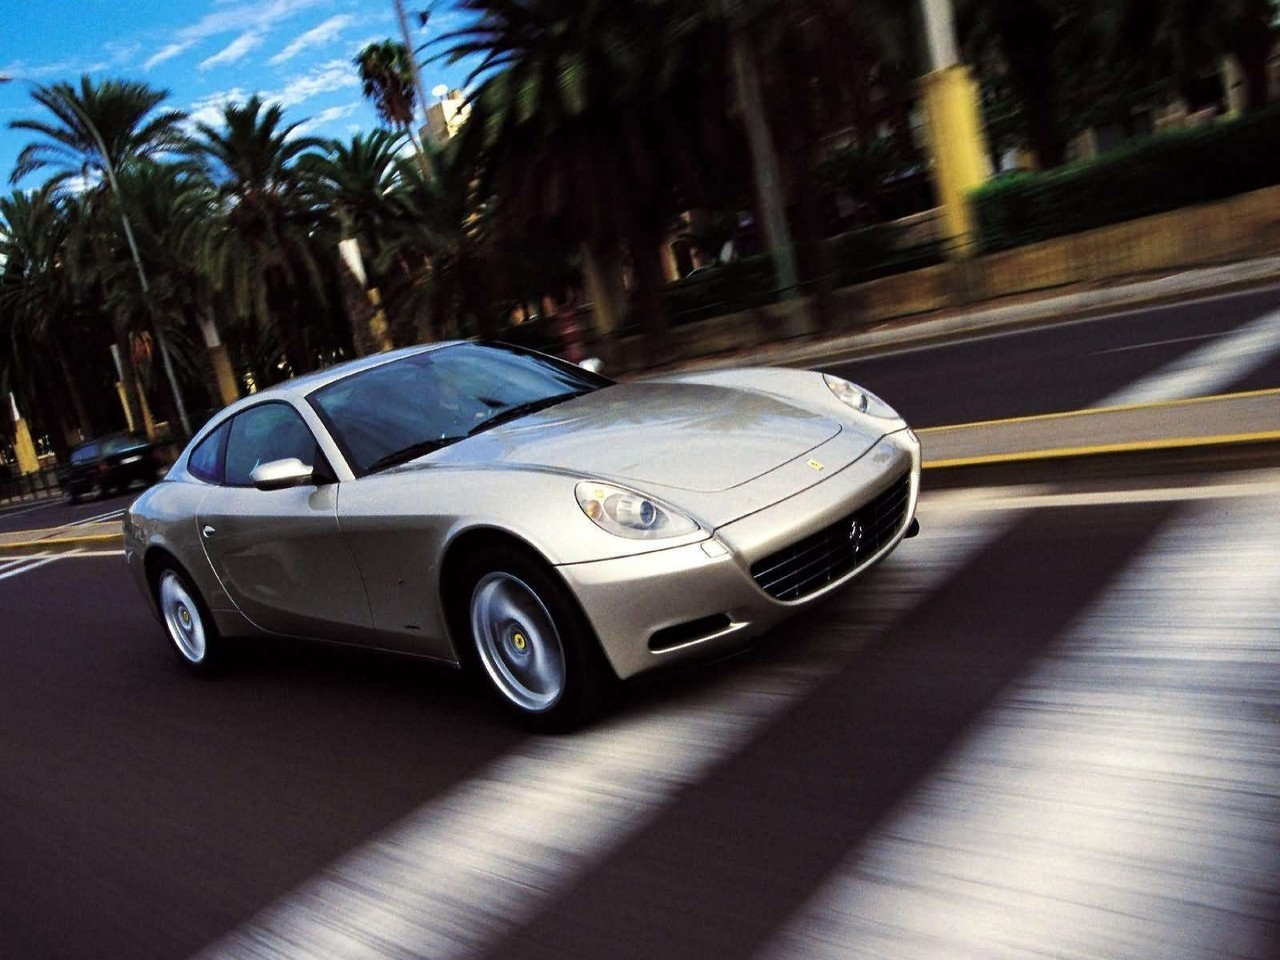 The Pininfarina Cars     2004 Ferrari 612 Scaglietti     (vía Car Pictures)